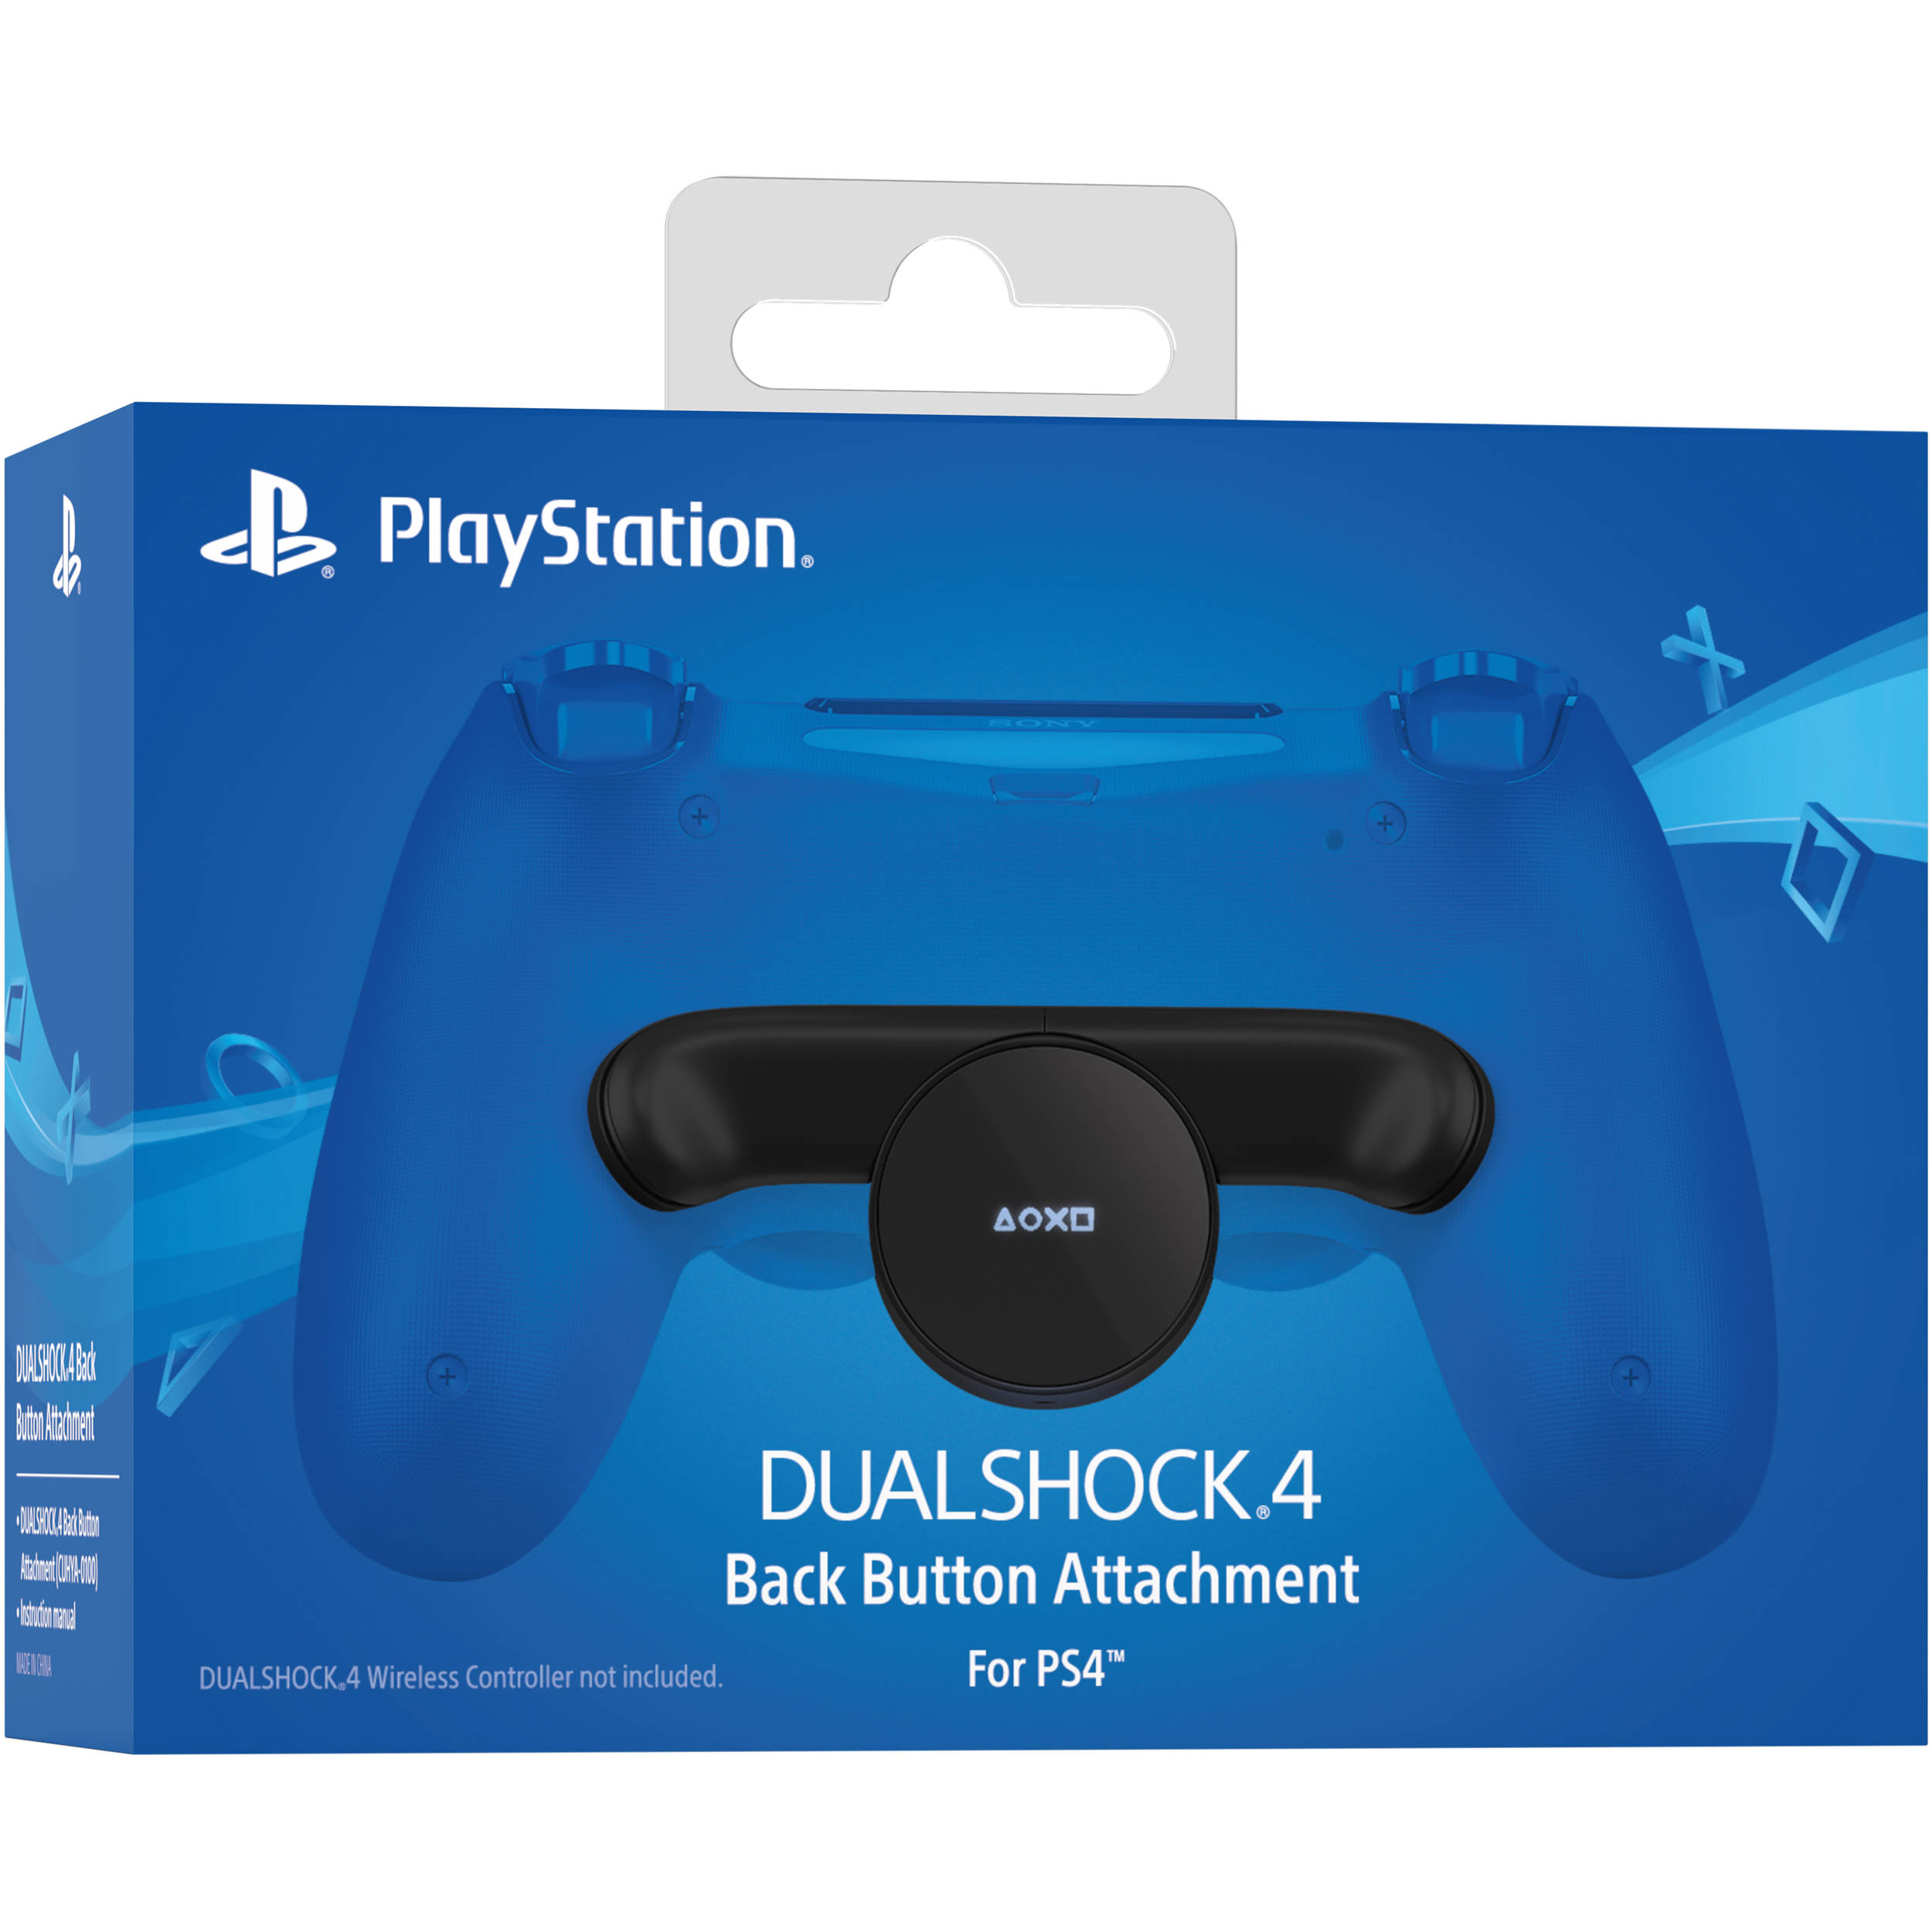 Sony Playstation Dualshock 4 Back Button Attachment 3004784 B H